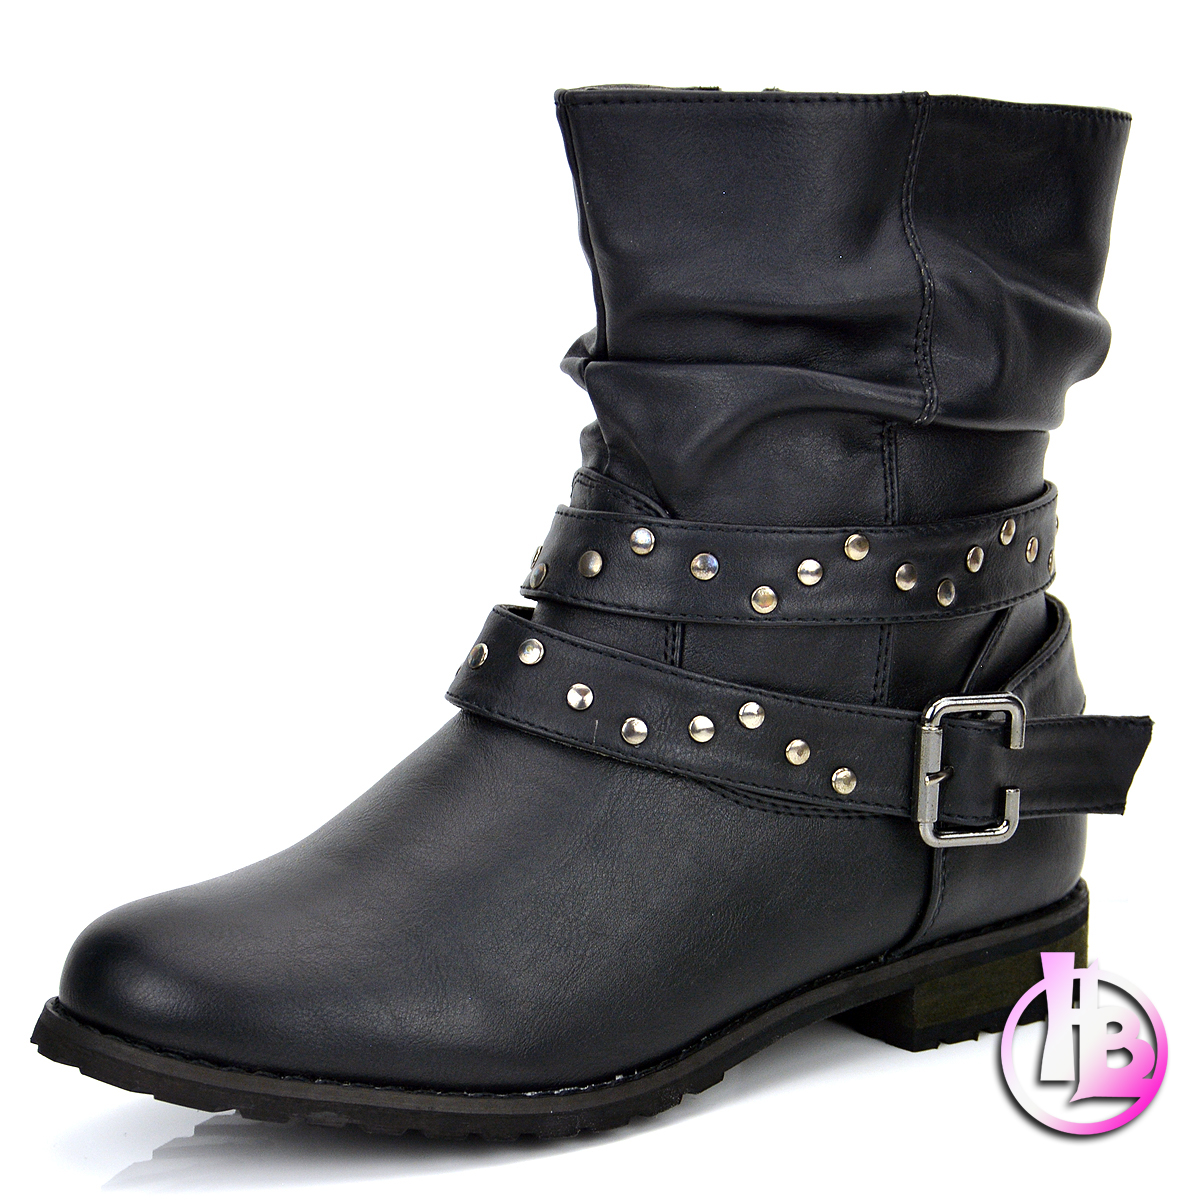 girls ankle boots designer winter shoe size 10 11 12 3 4 5